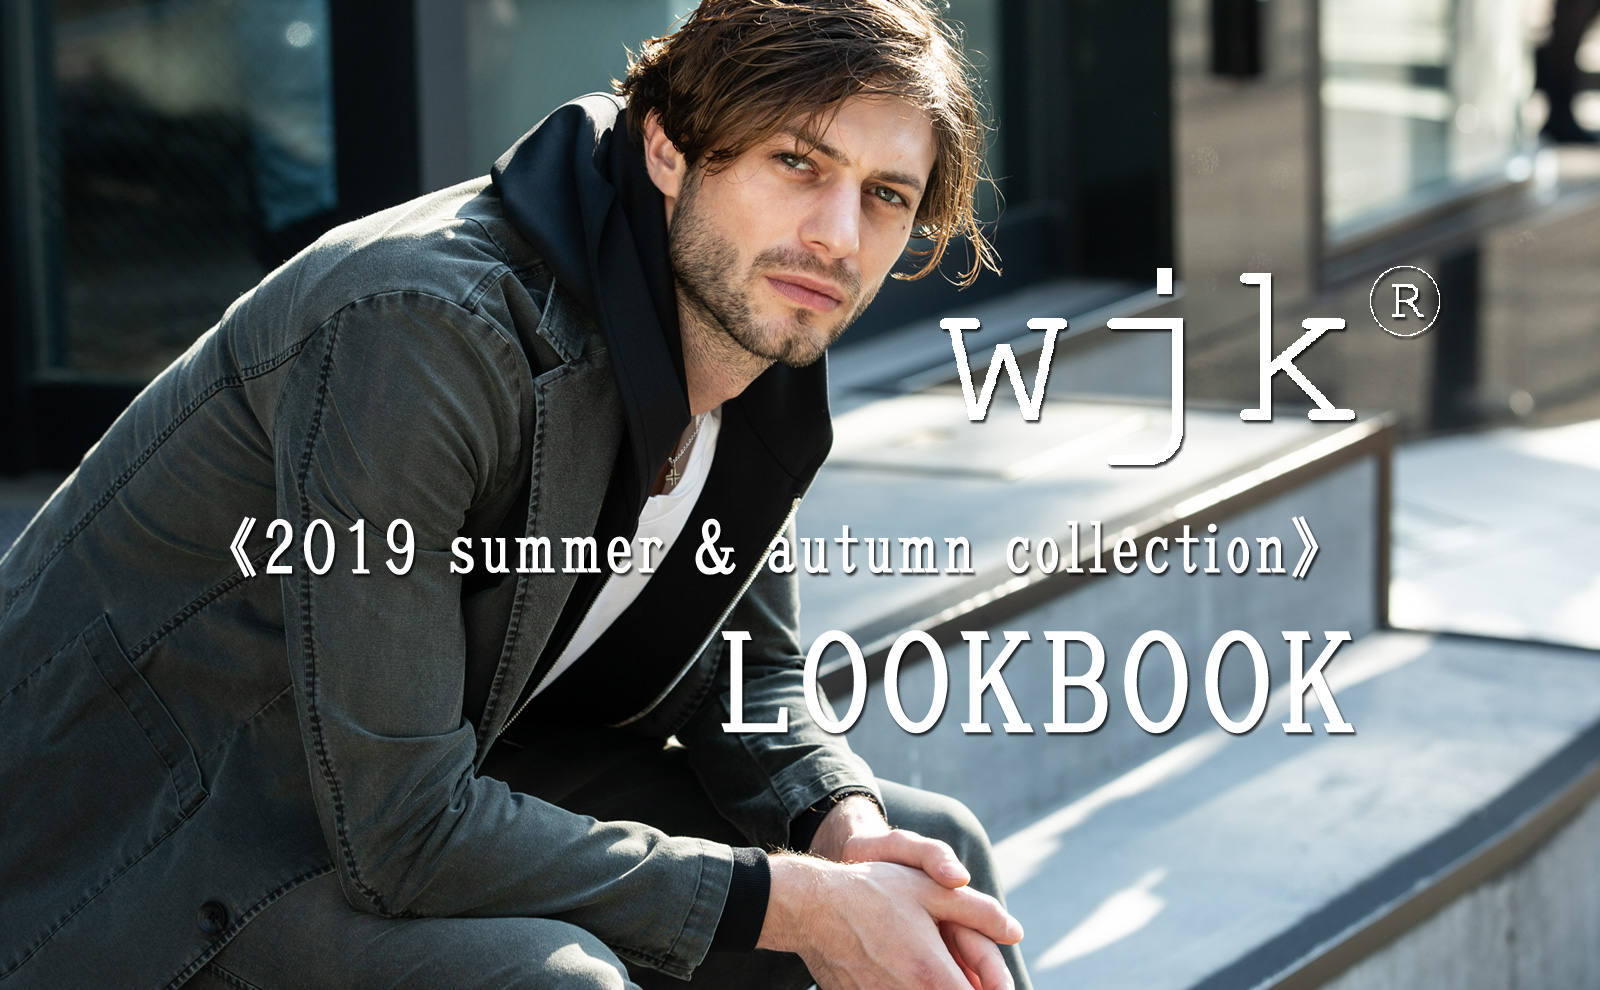 《2019 summer & autumn collection》 LOOKBOOK